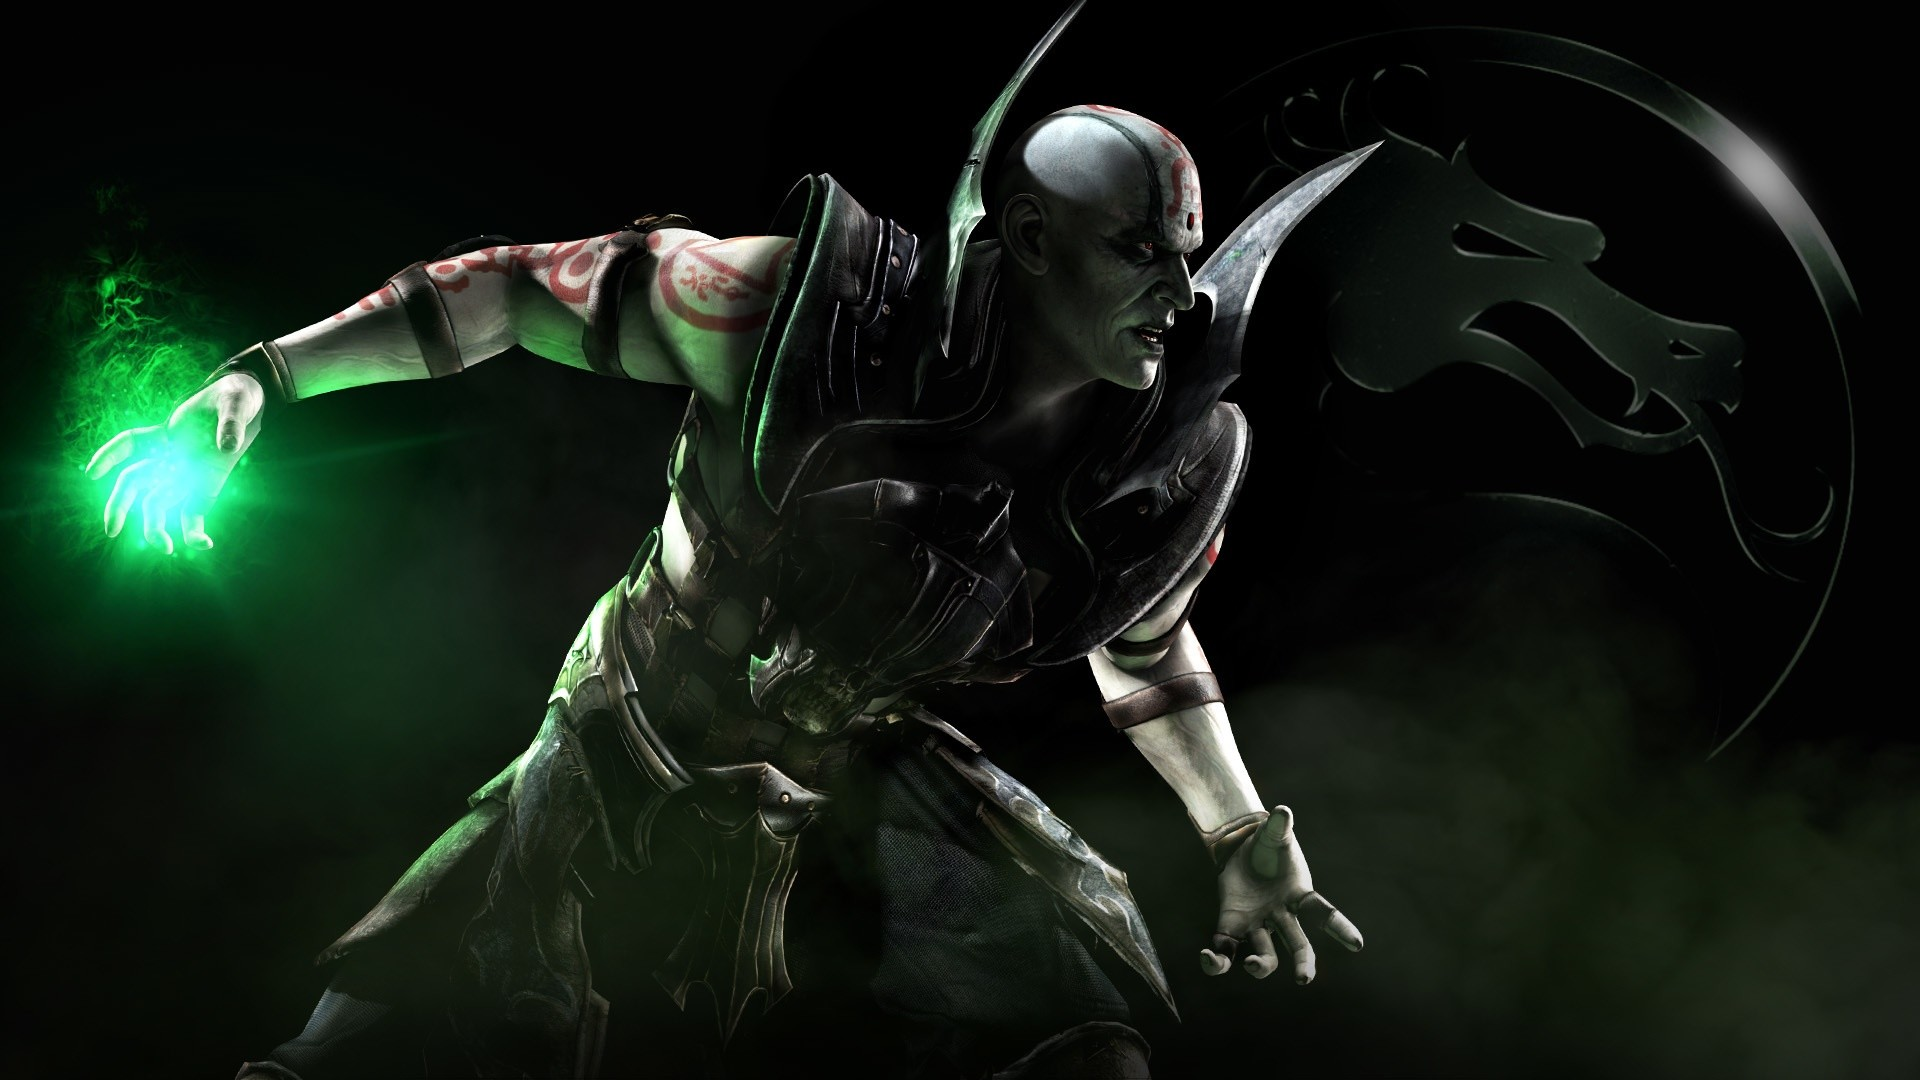 1920x1200 Mortal Kombat Scorpion Drawing HD Desktop Wallpaper High 2560A 1440 49